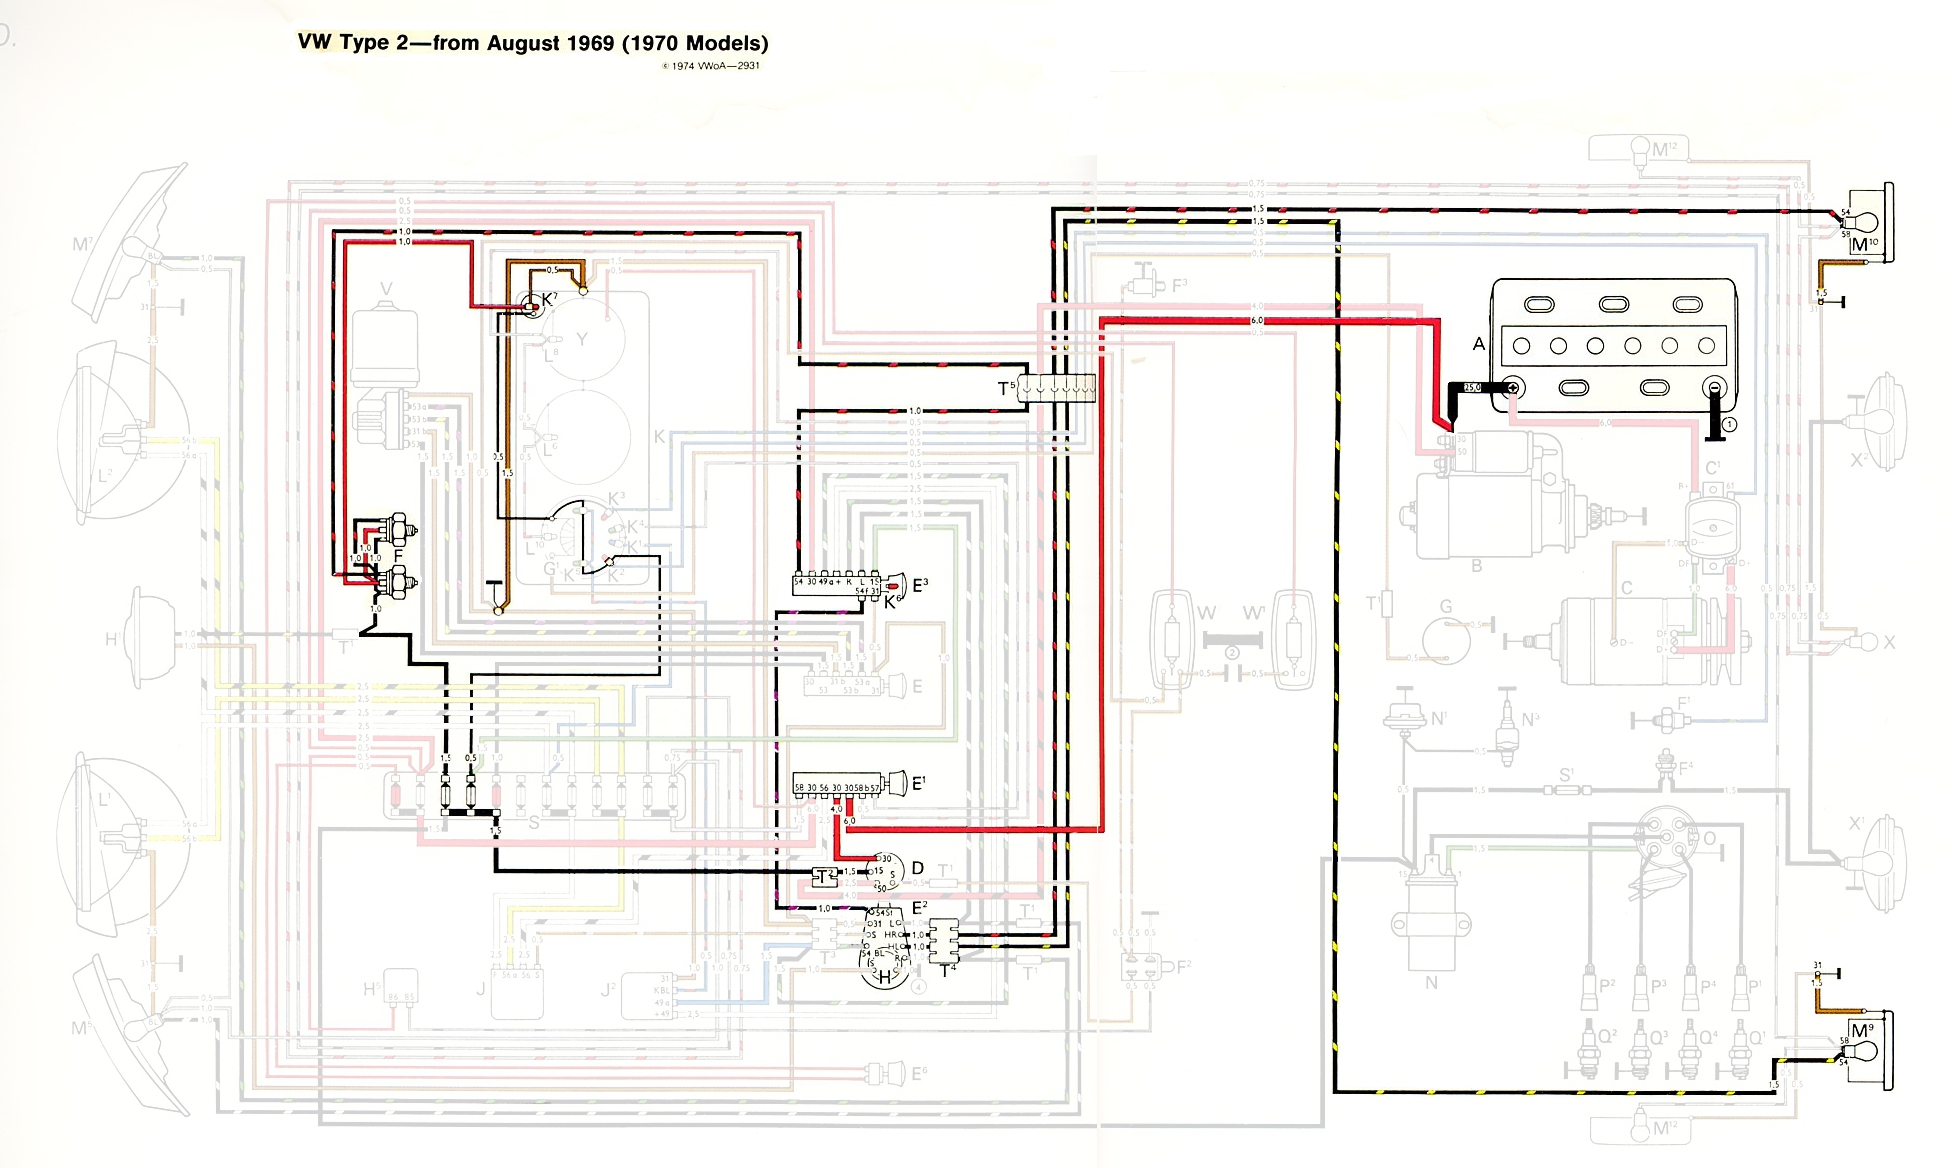 vw charging system wiring diagram volleyball positions 6 2 thesamba type diagrams